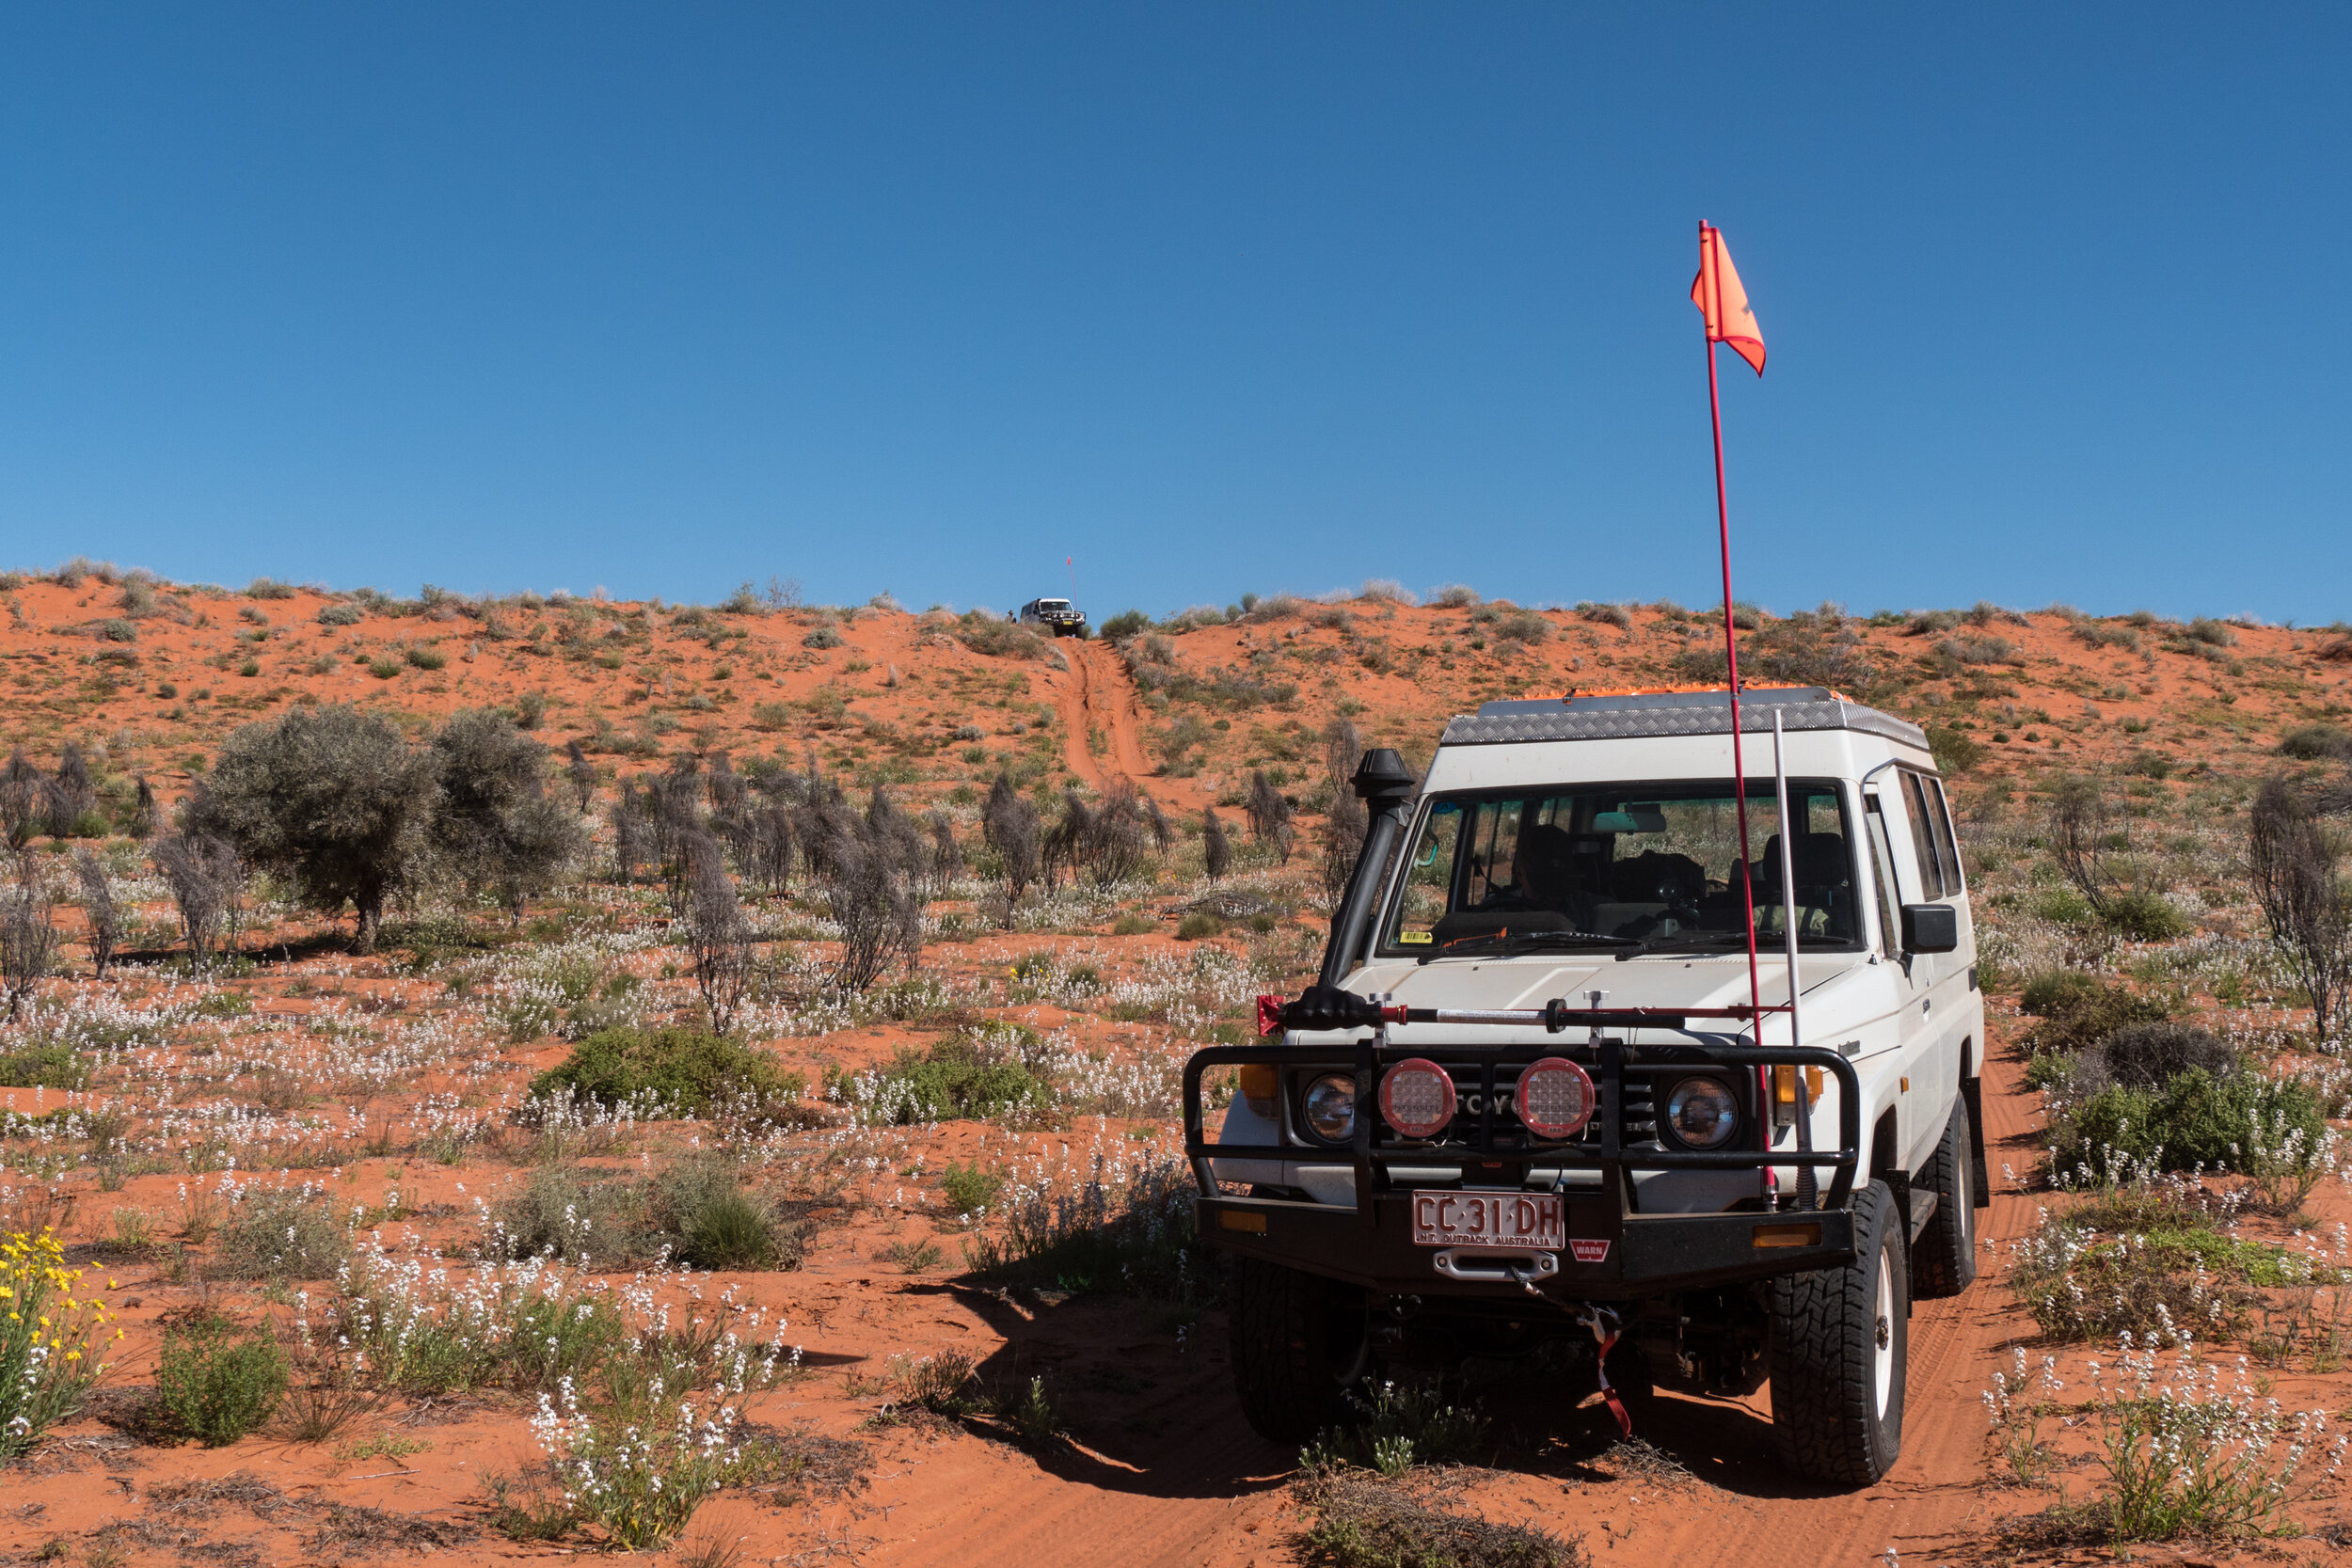 Toyota Hzj75 Land Cruiser Troopy Ultimate Overland Expedition Vehicle Overland Expo